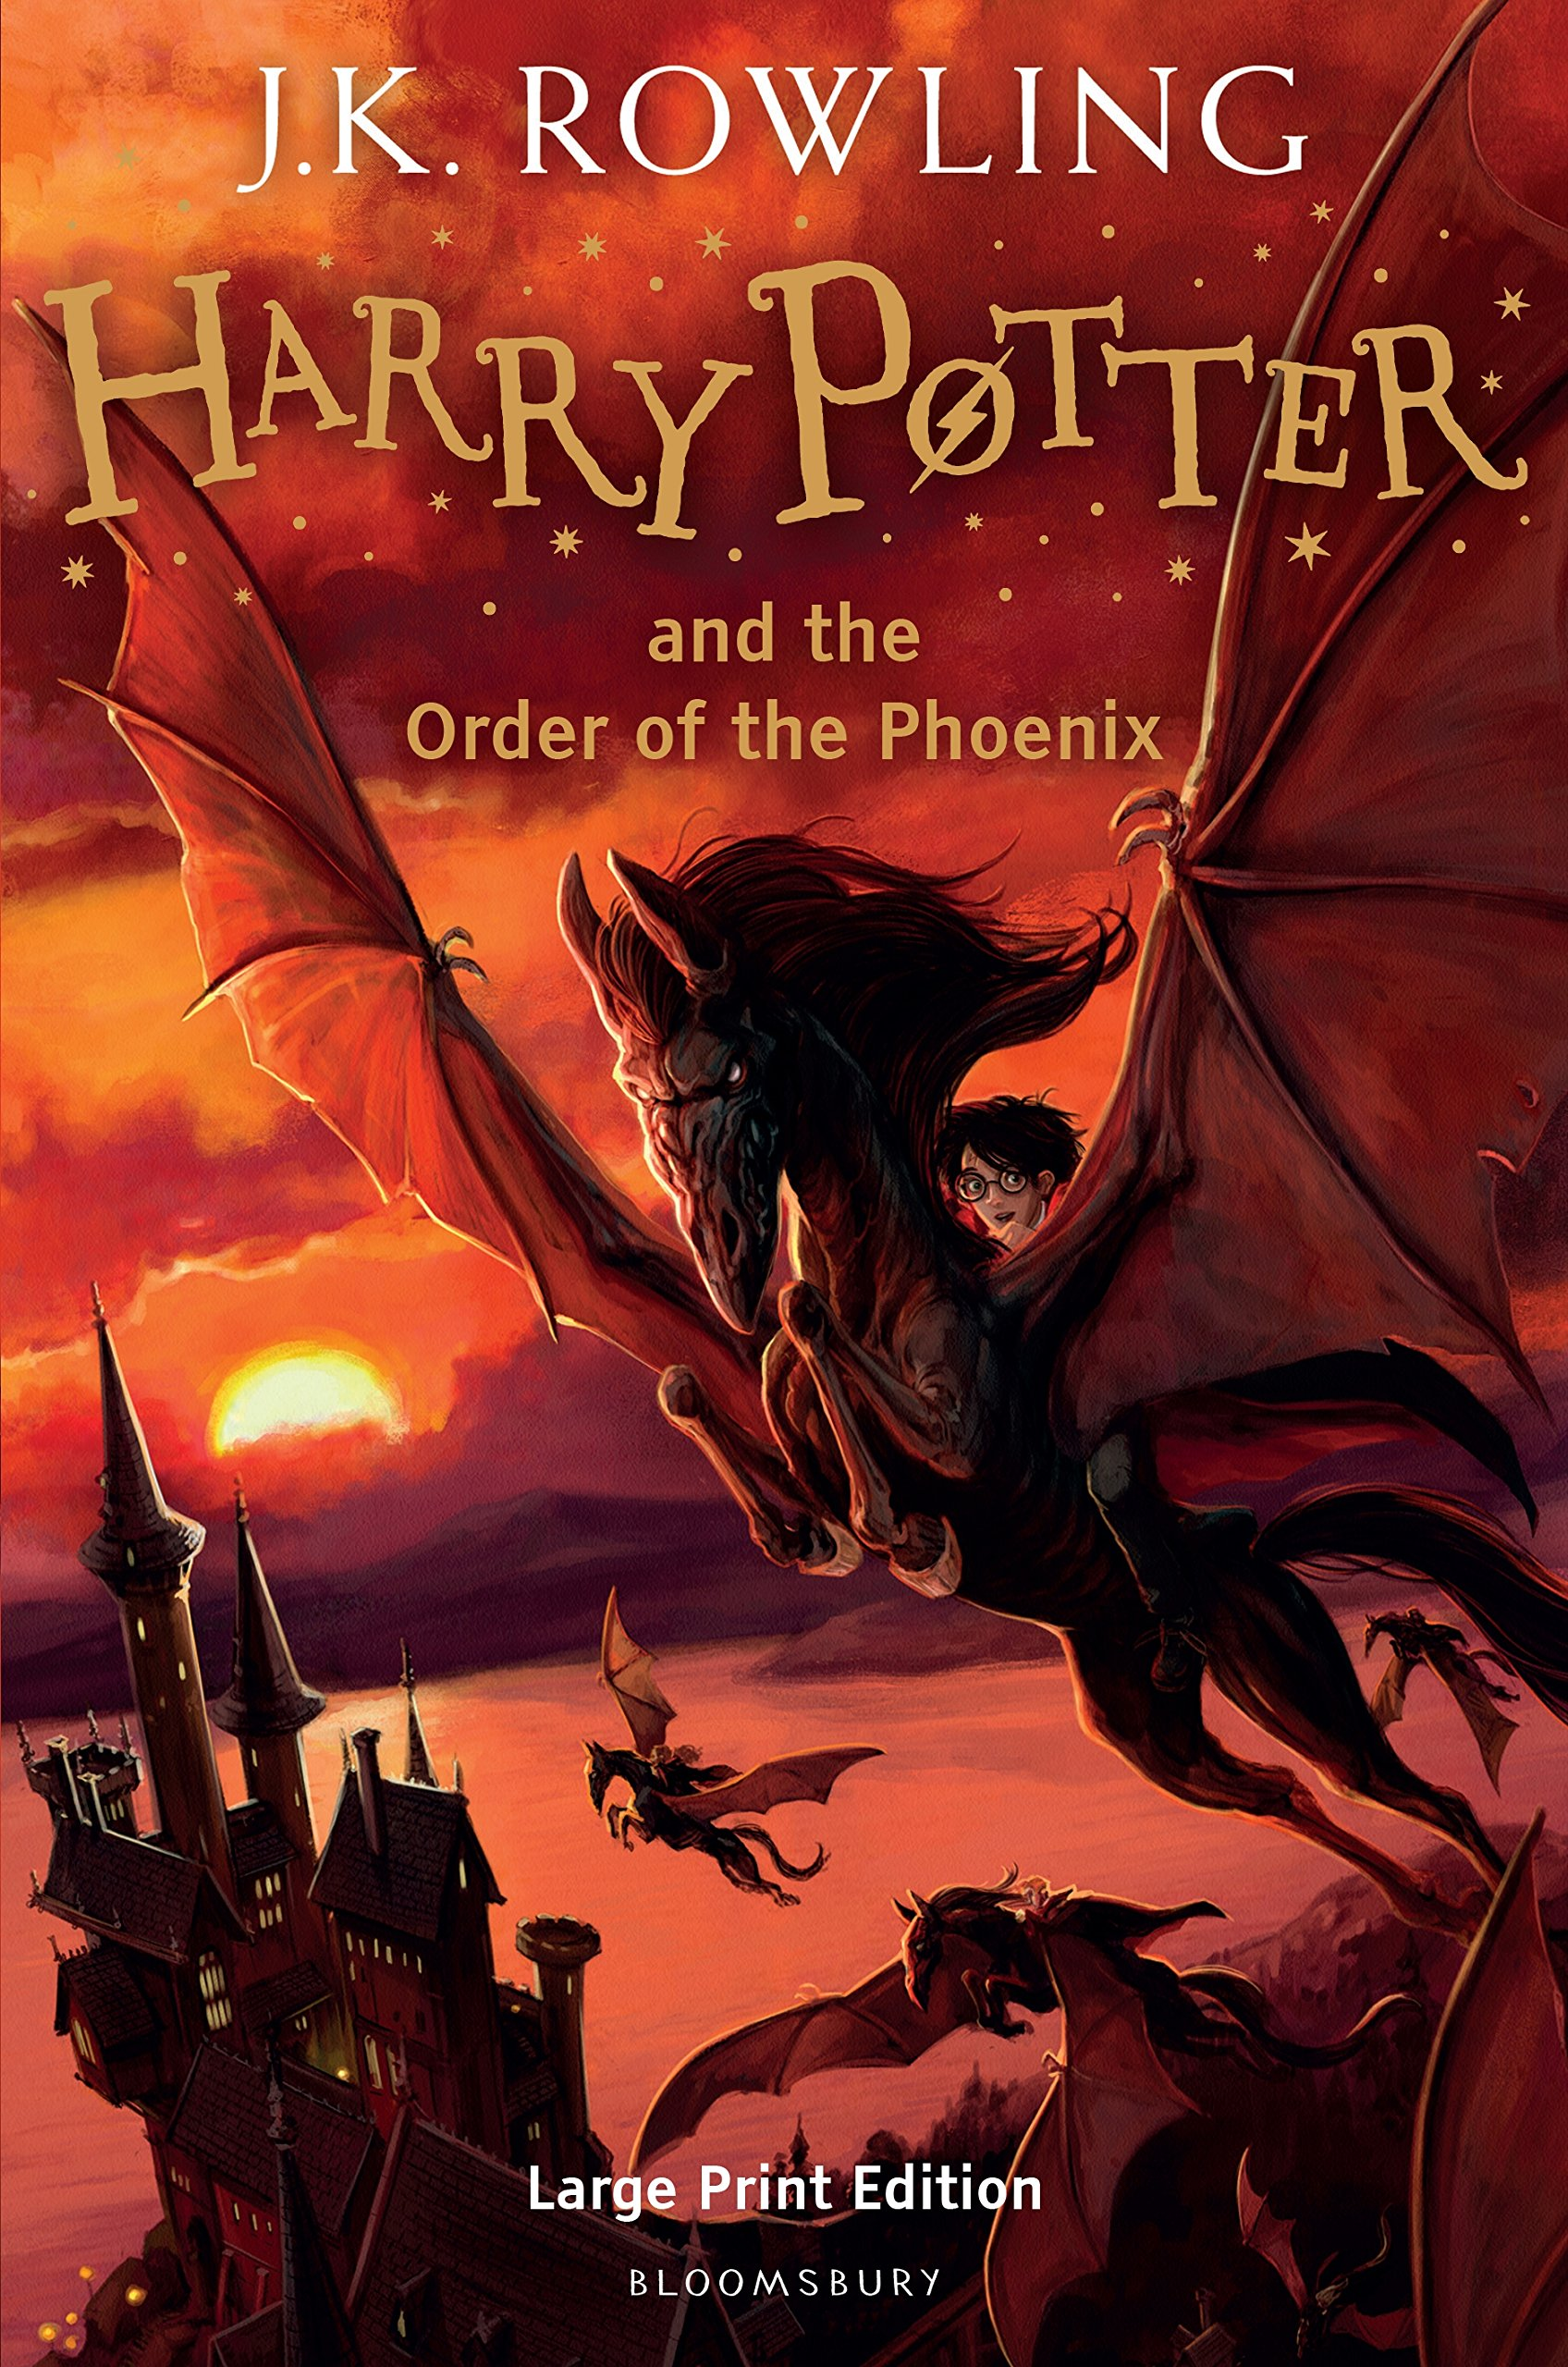 Harry Potter And The Order Of The Phoenix Rowling J Kf 8601415889192 Amazon Com Books